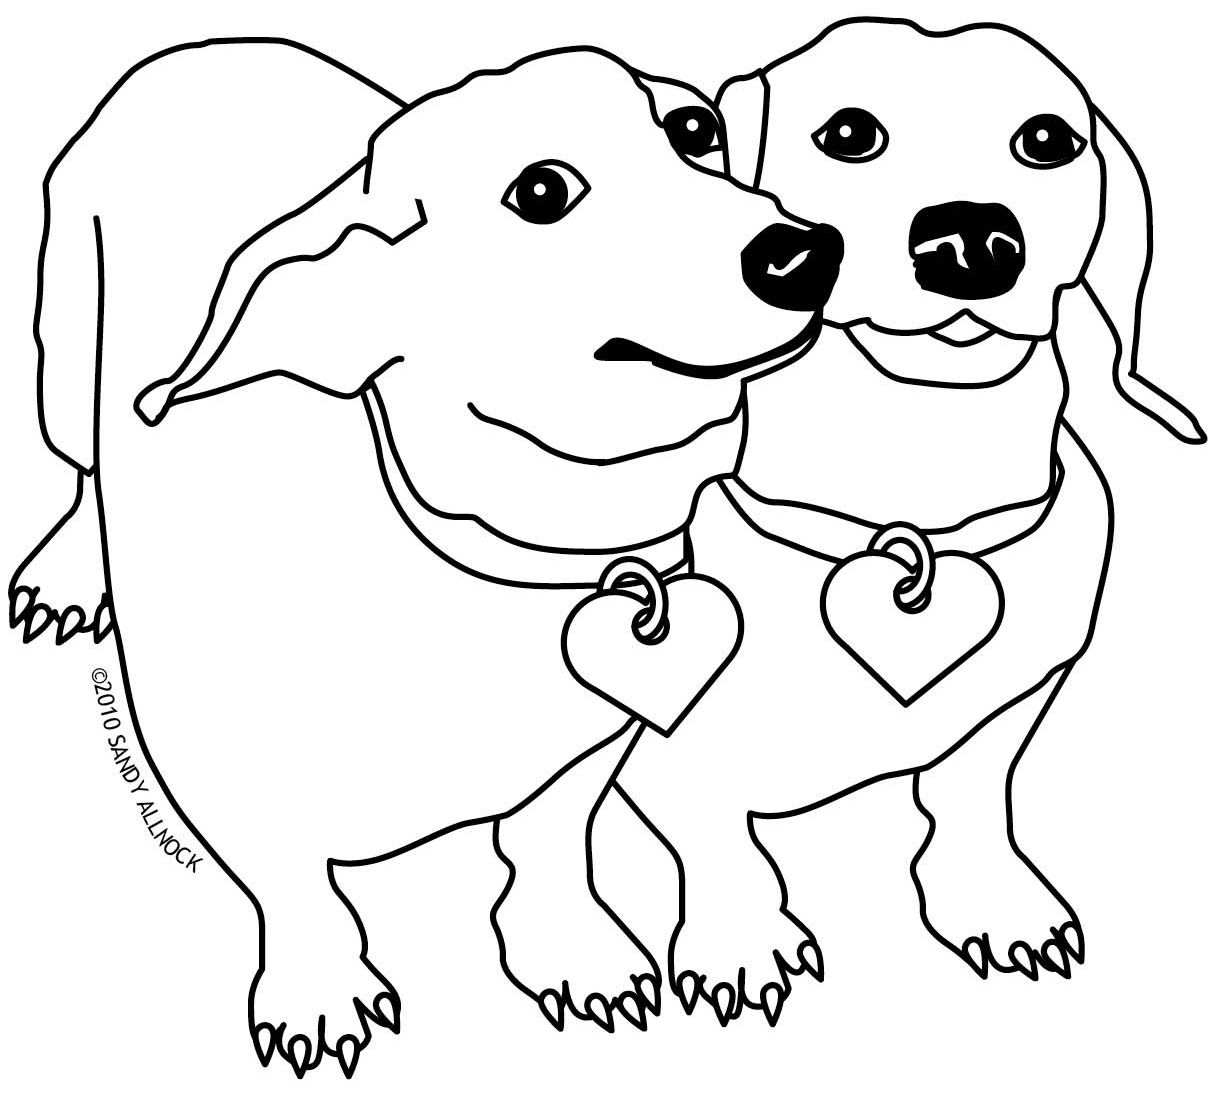 Its a colourful world Dog coloring page, Dog coloring